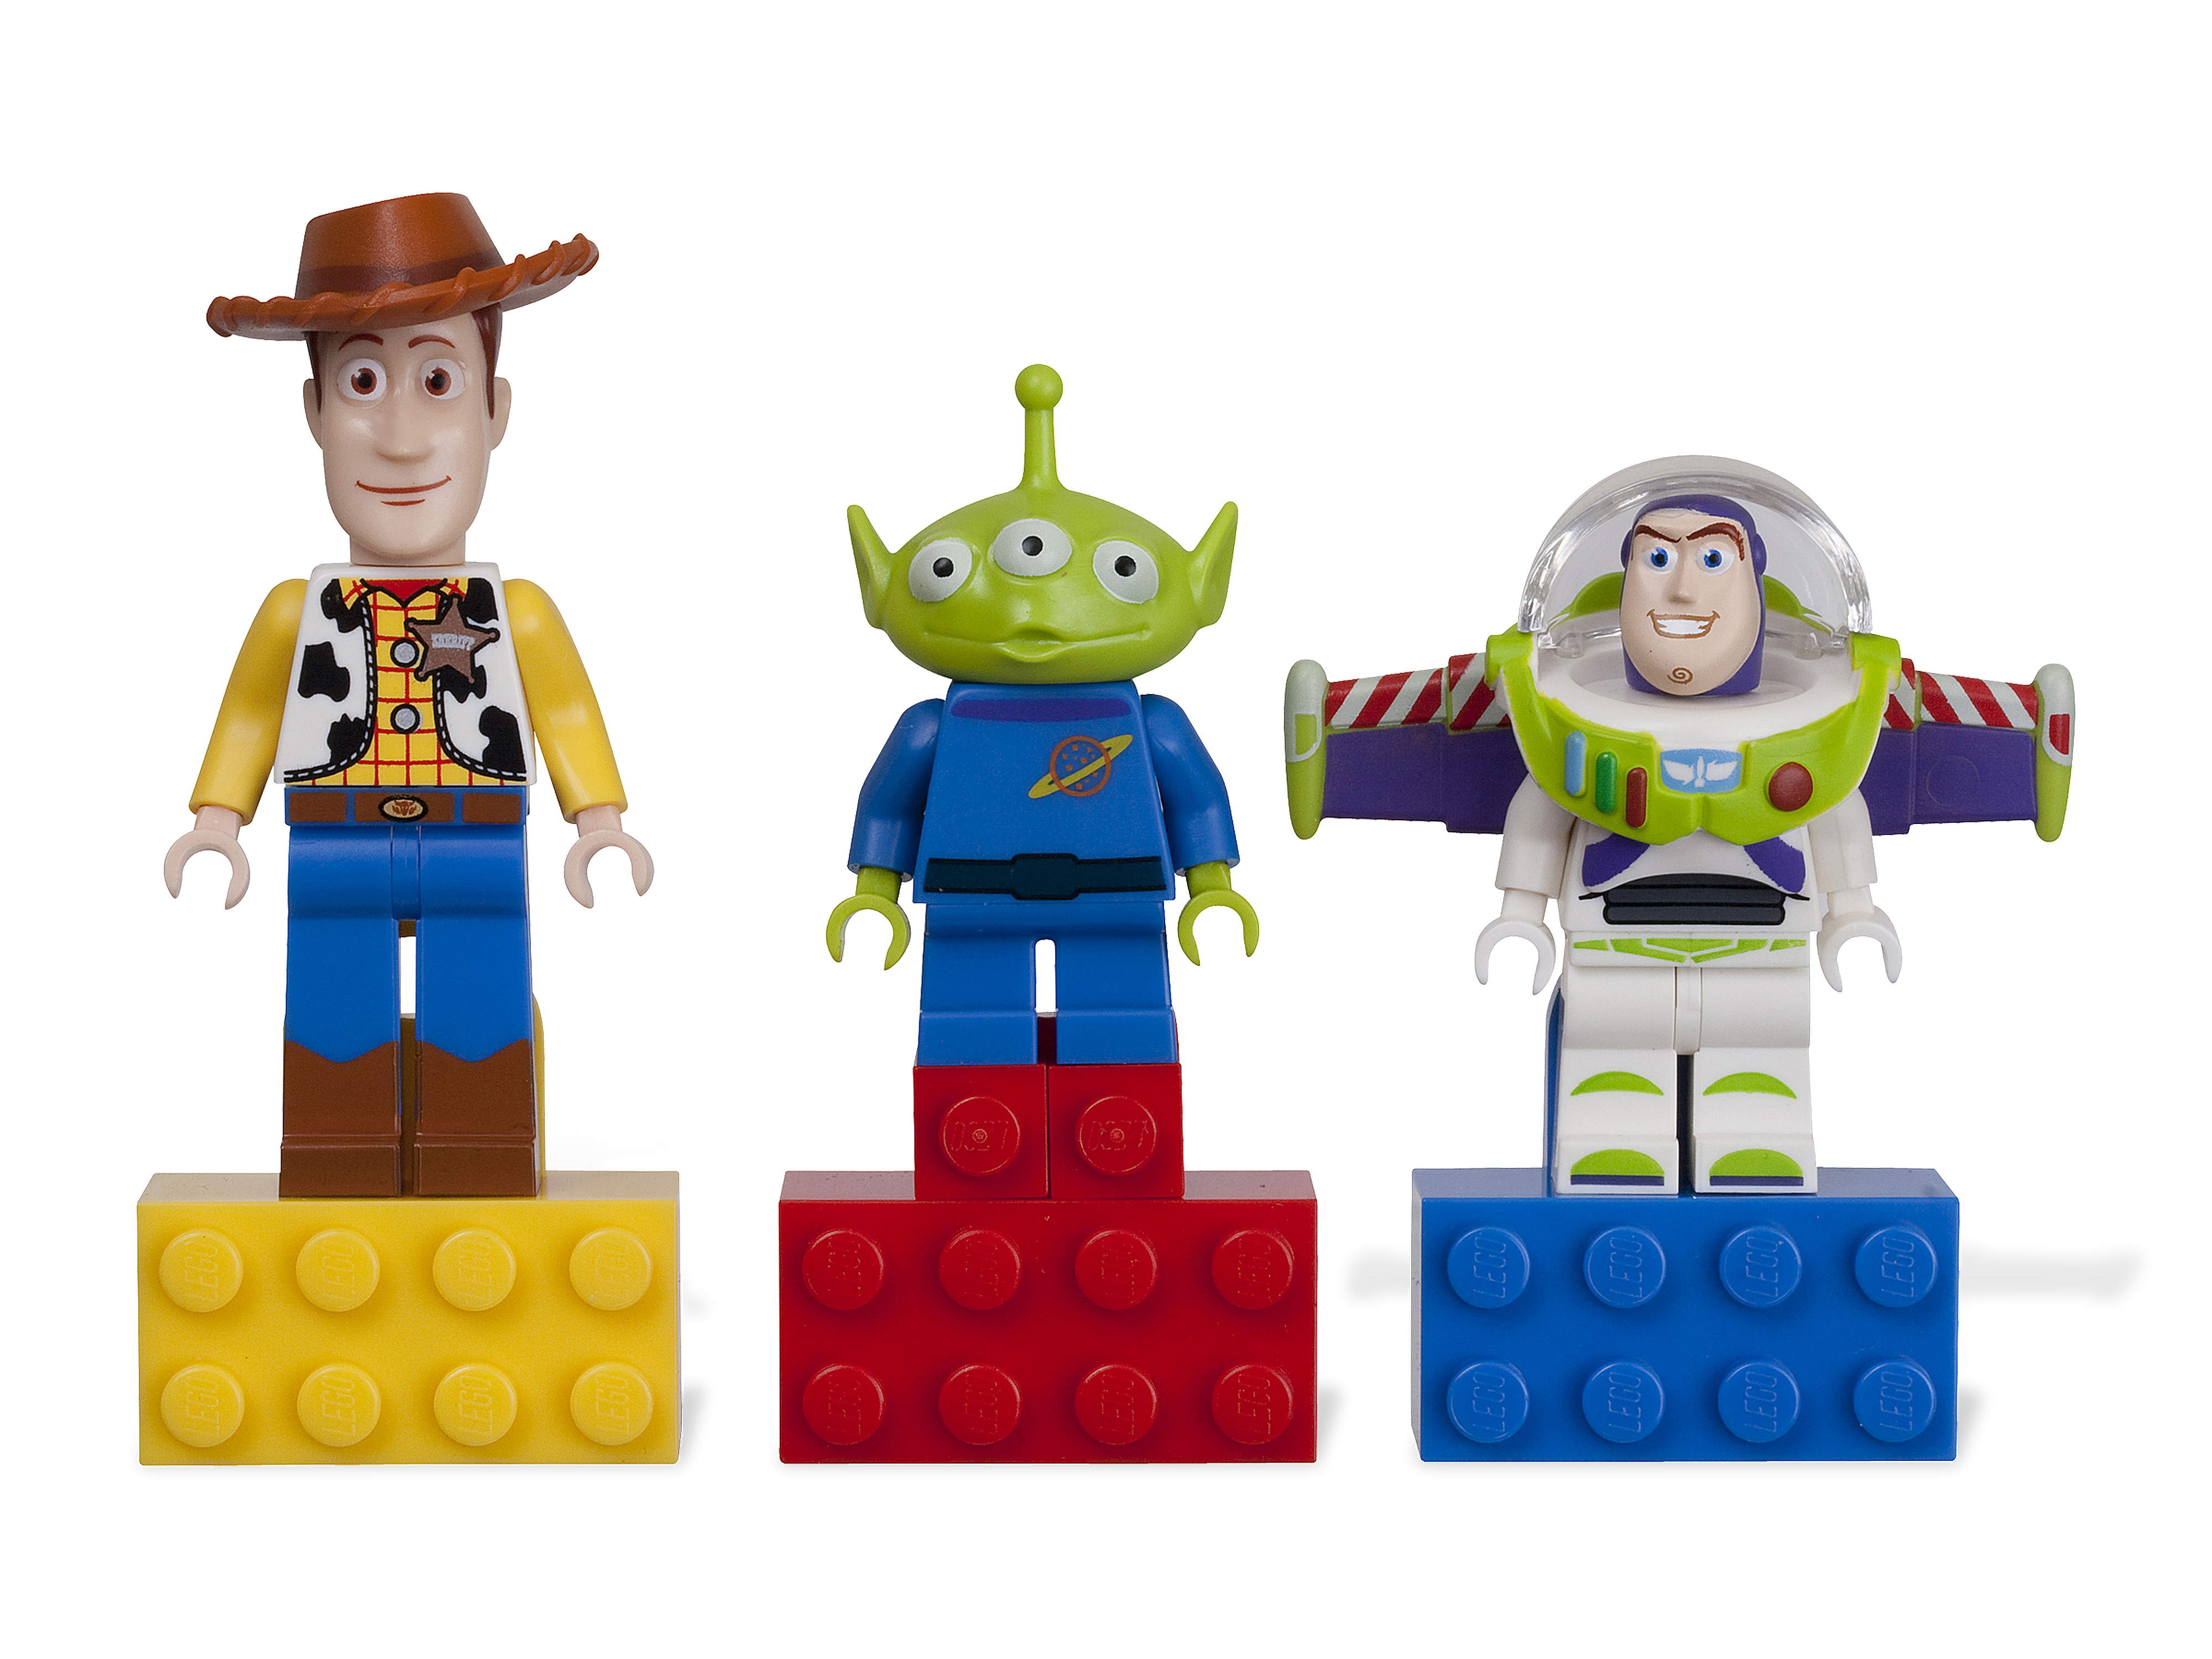 Toy story buzz and woody png. Magnet set brickipedia